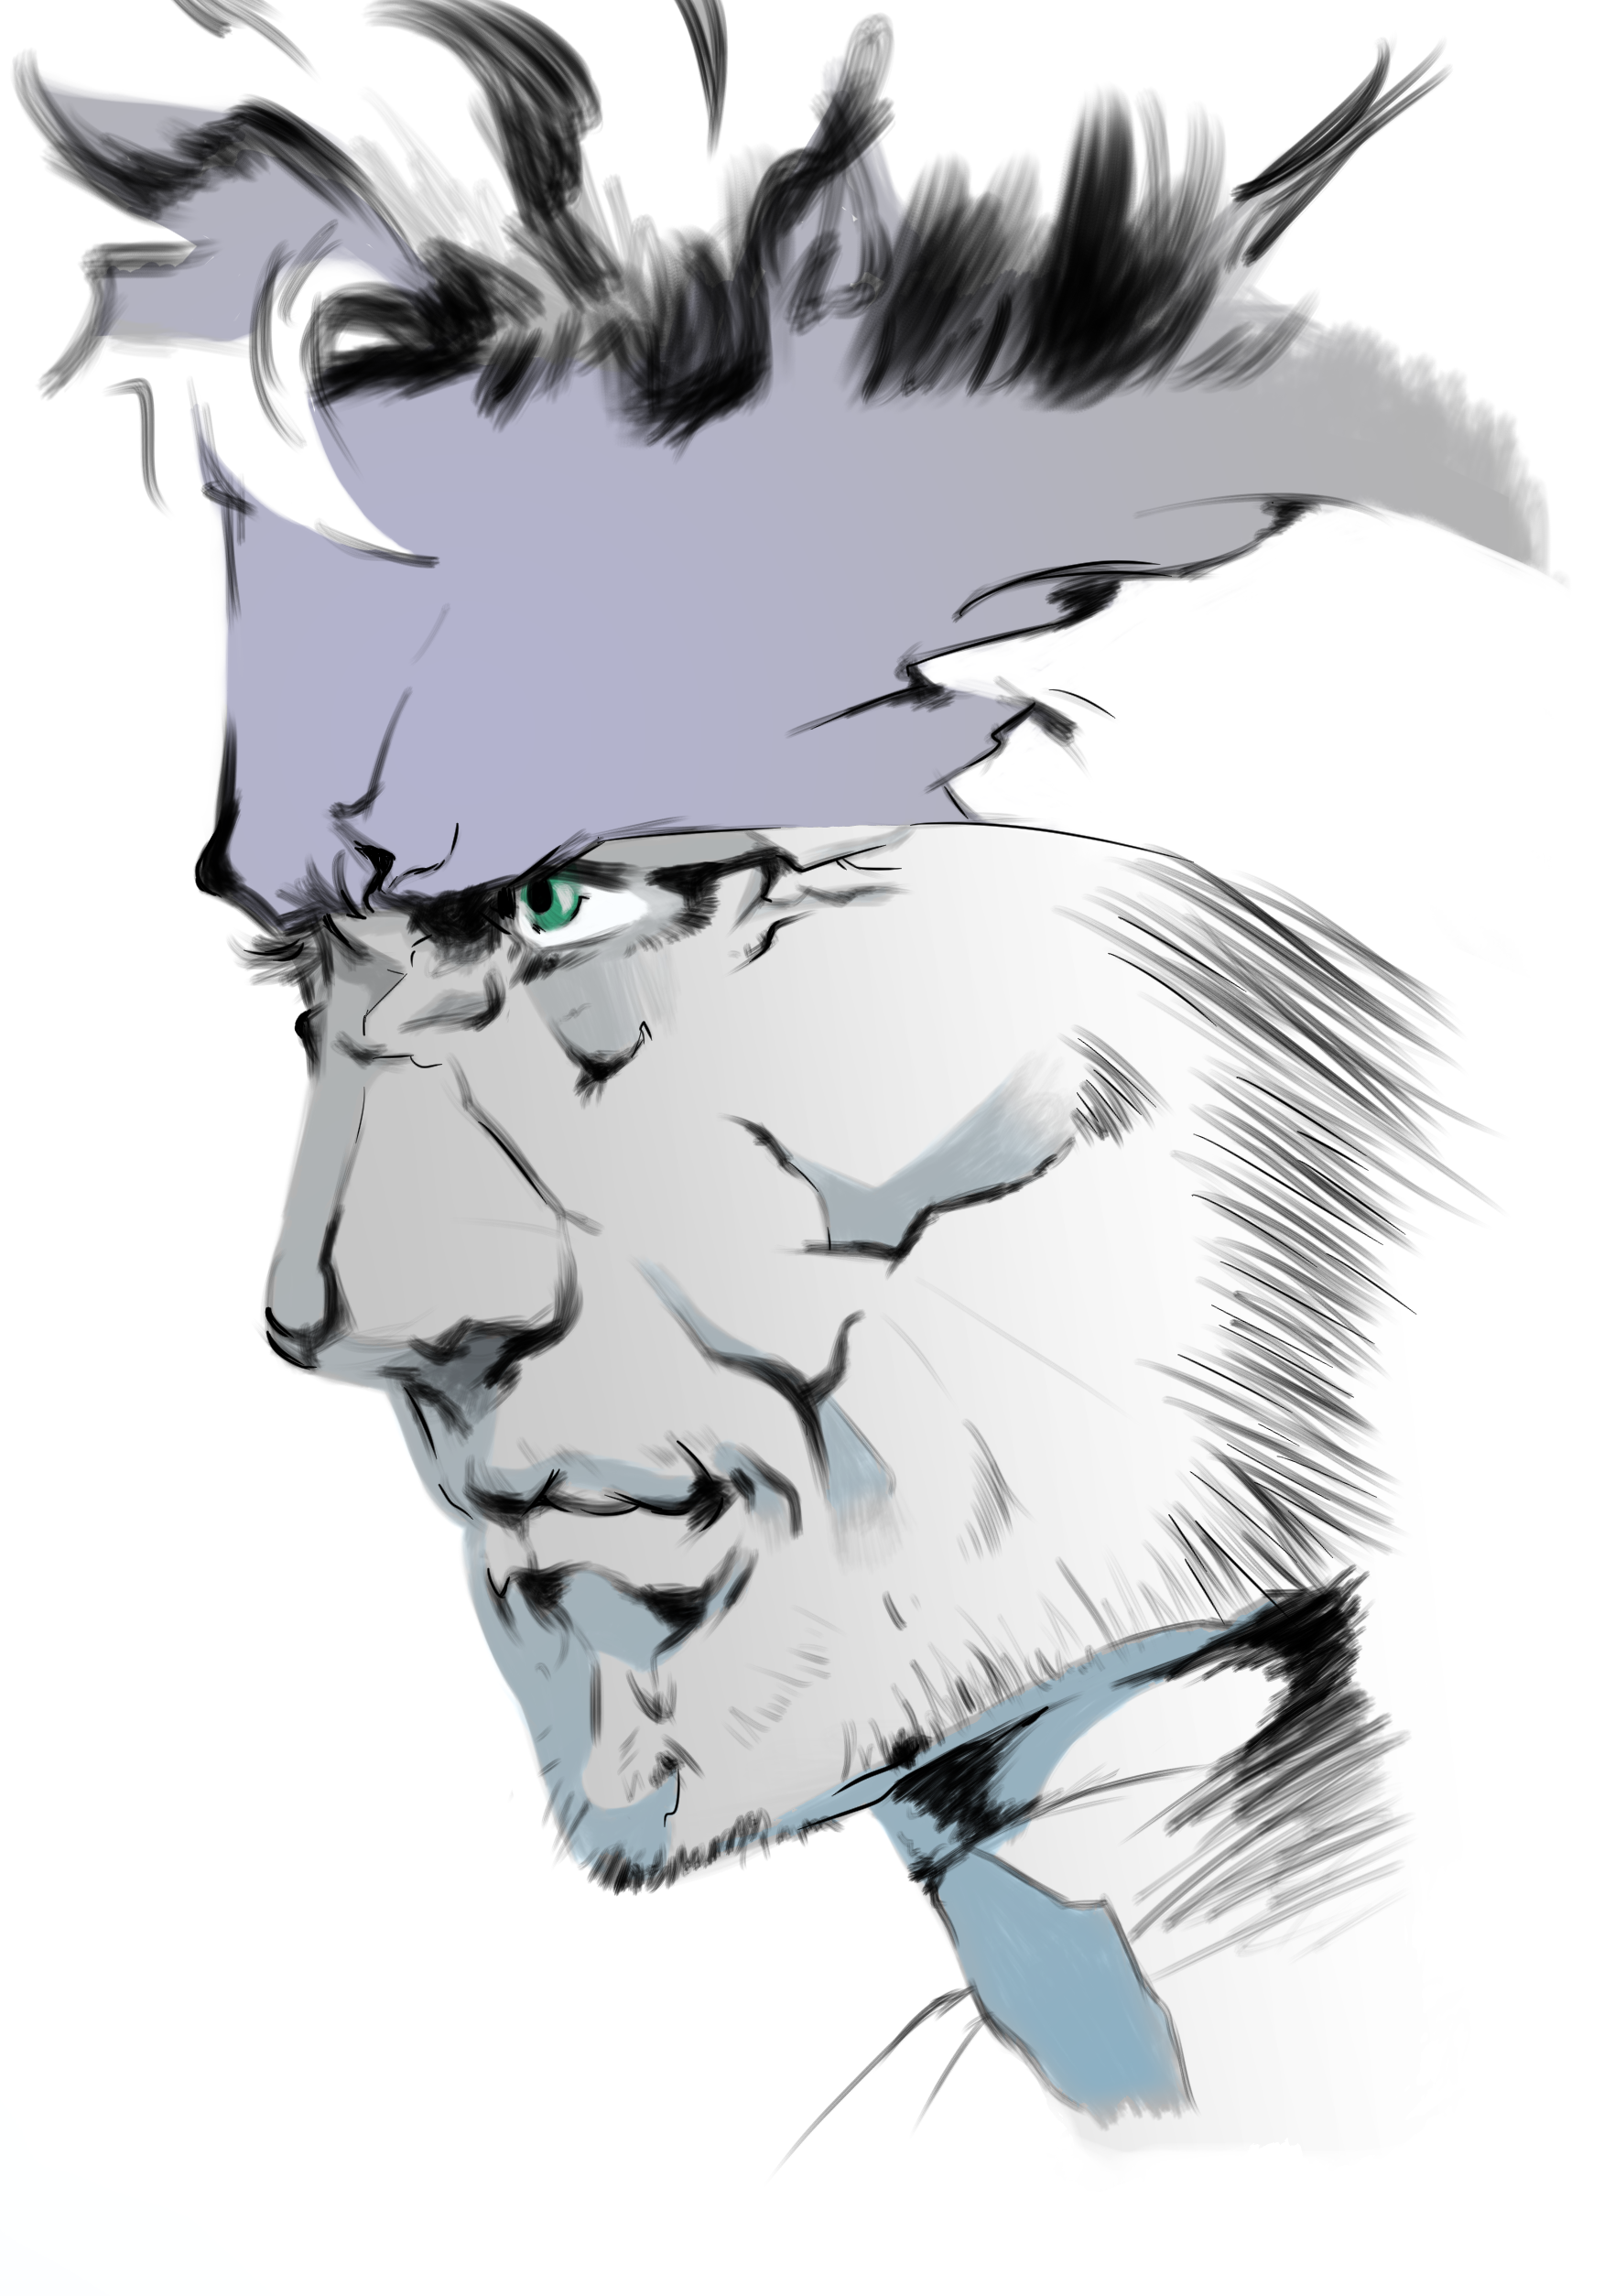 Drew Snake From Mgs2 First Time I Tried Something Outside